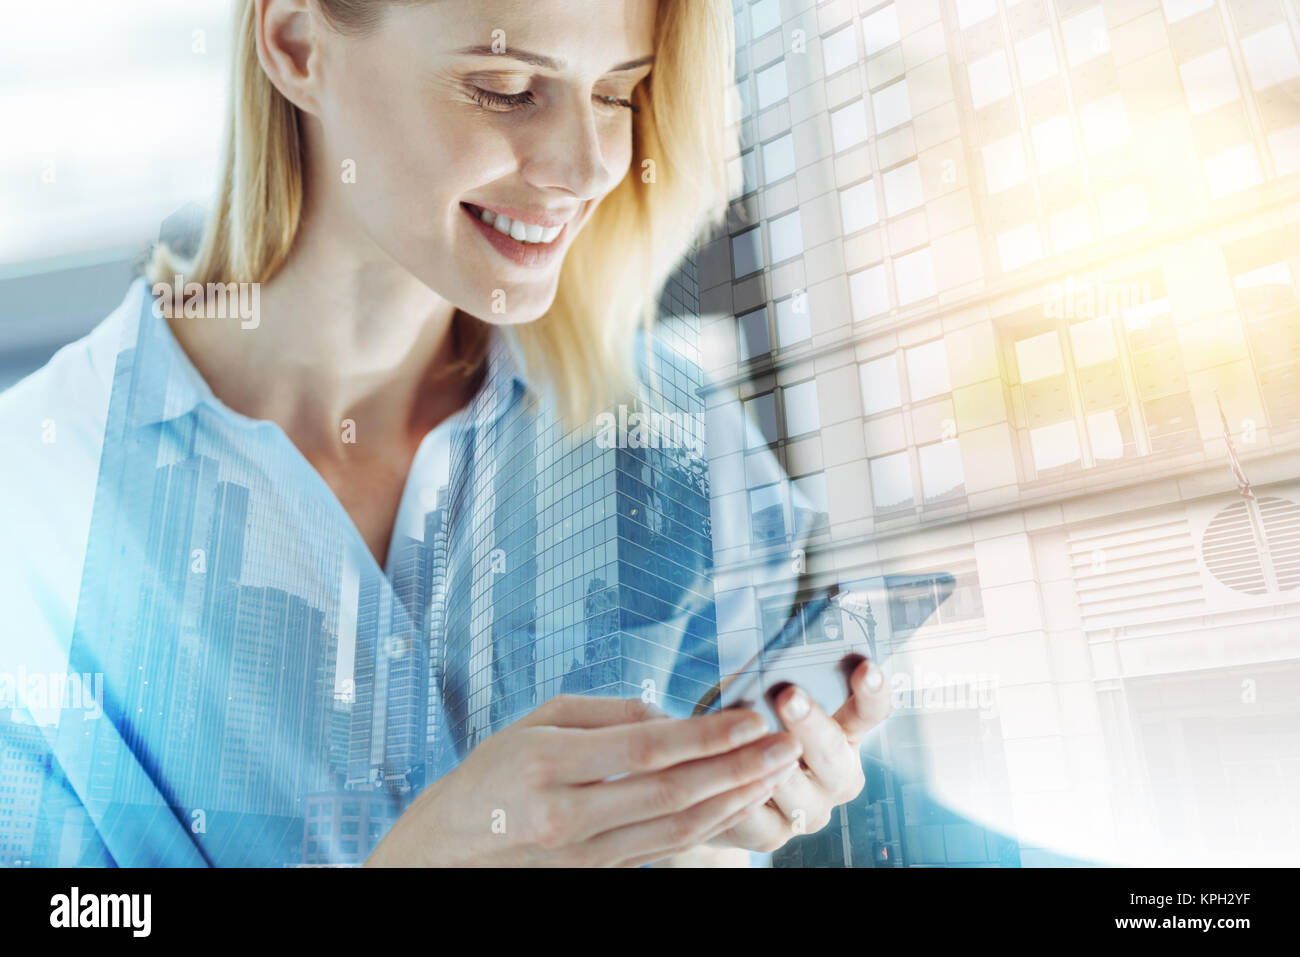 Pretty pleasant woman using cellphone and messaging. - Stock Image